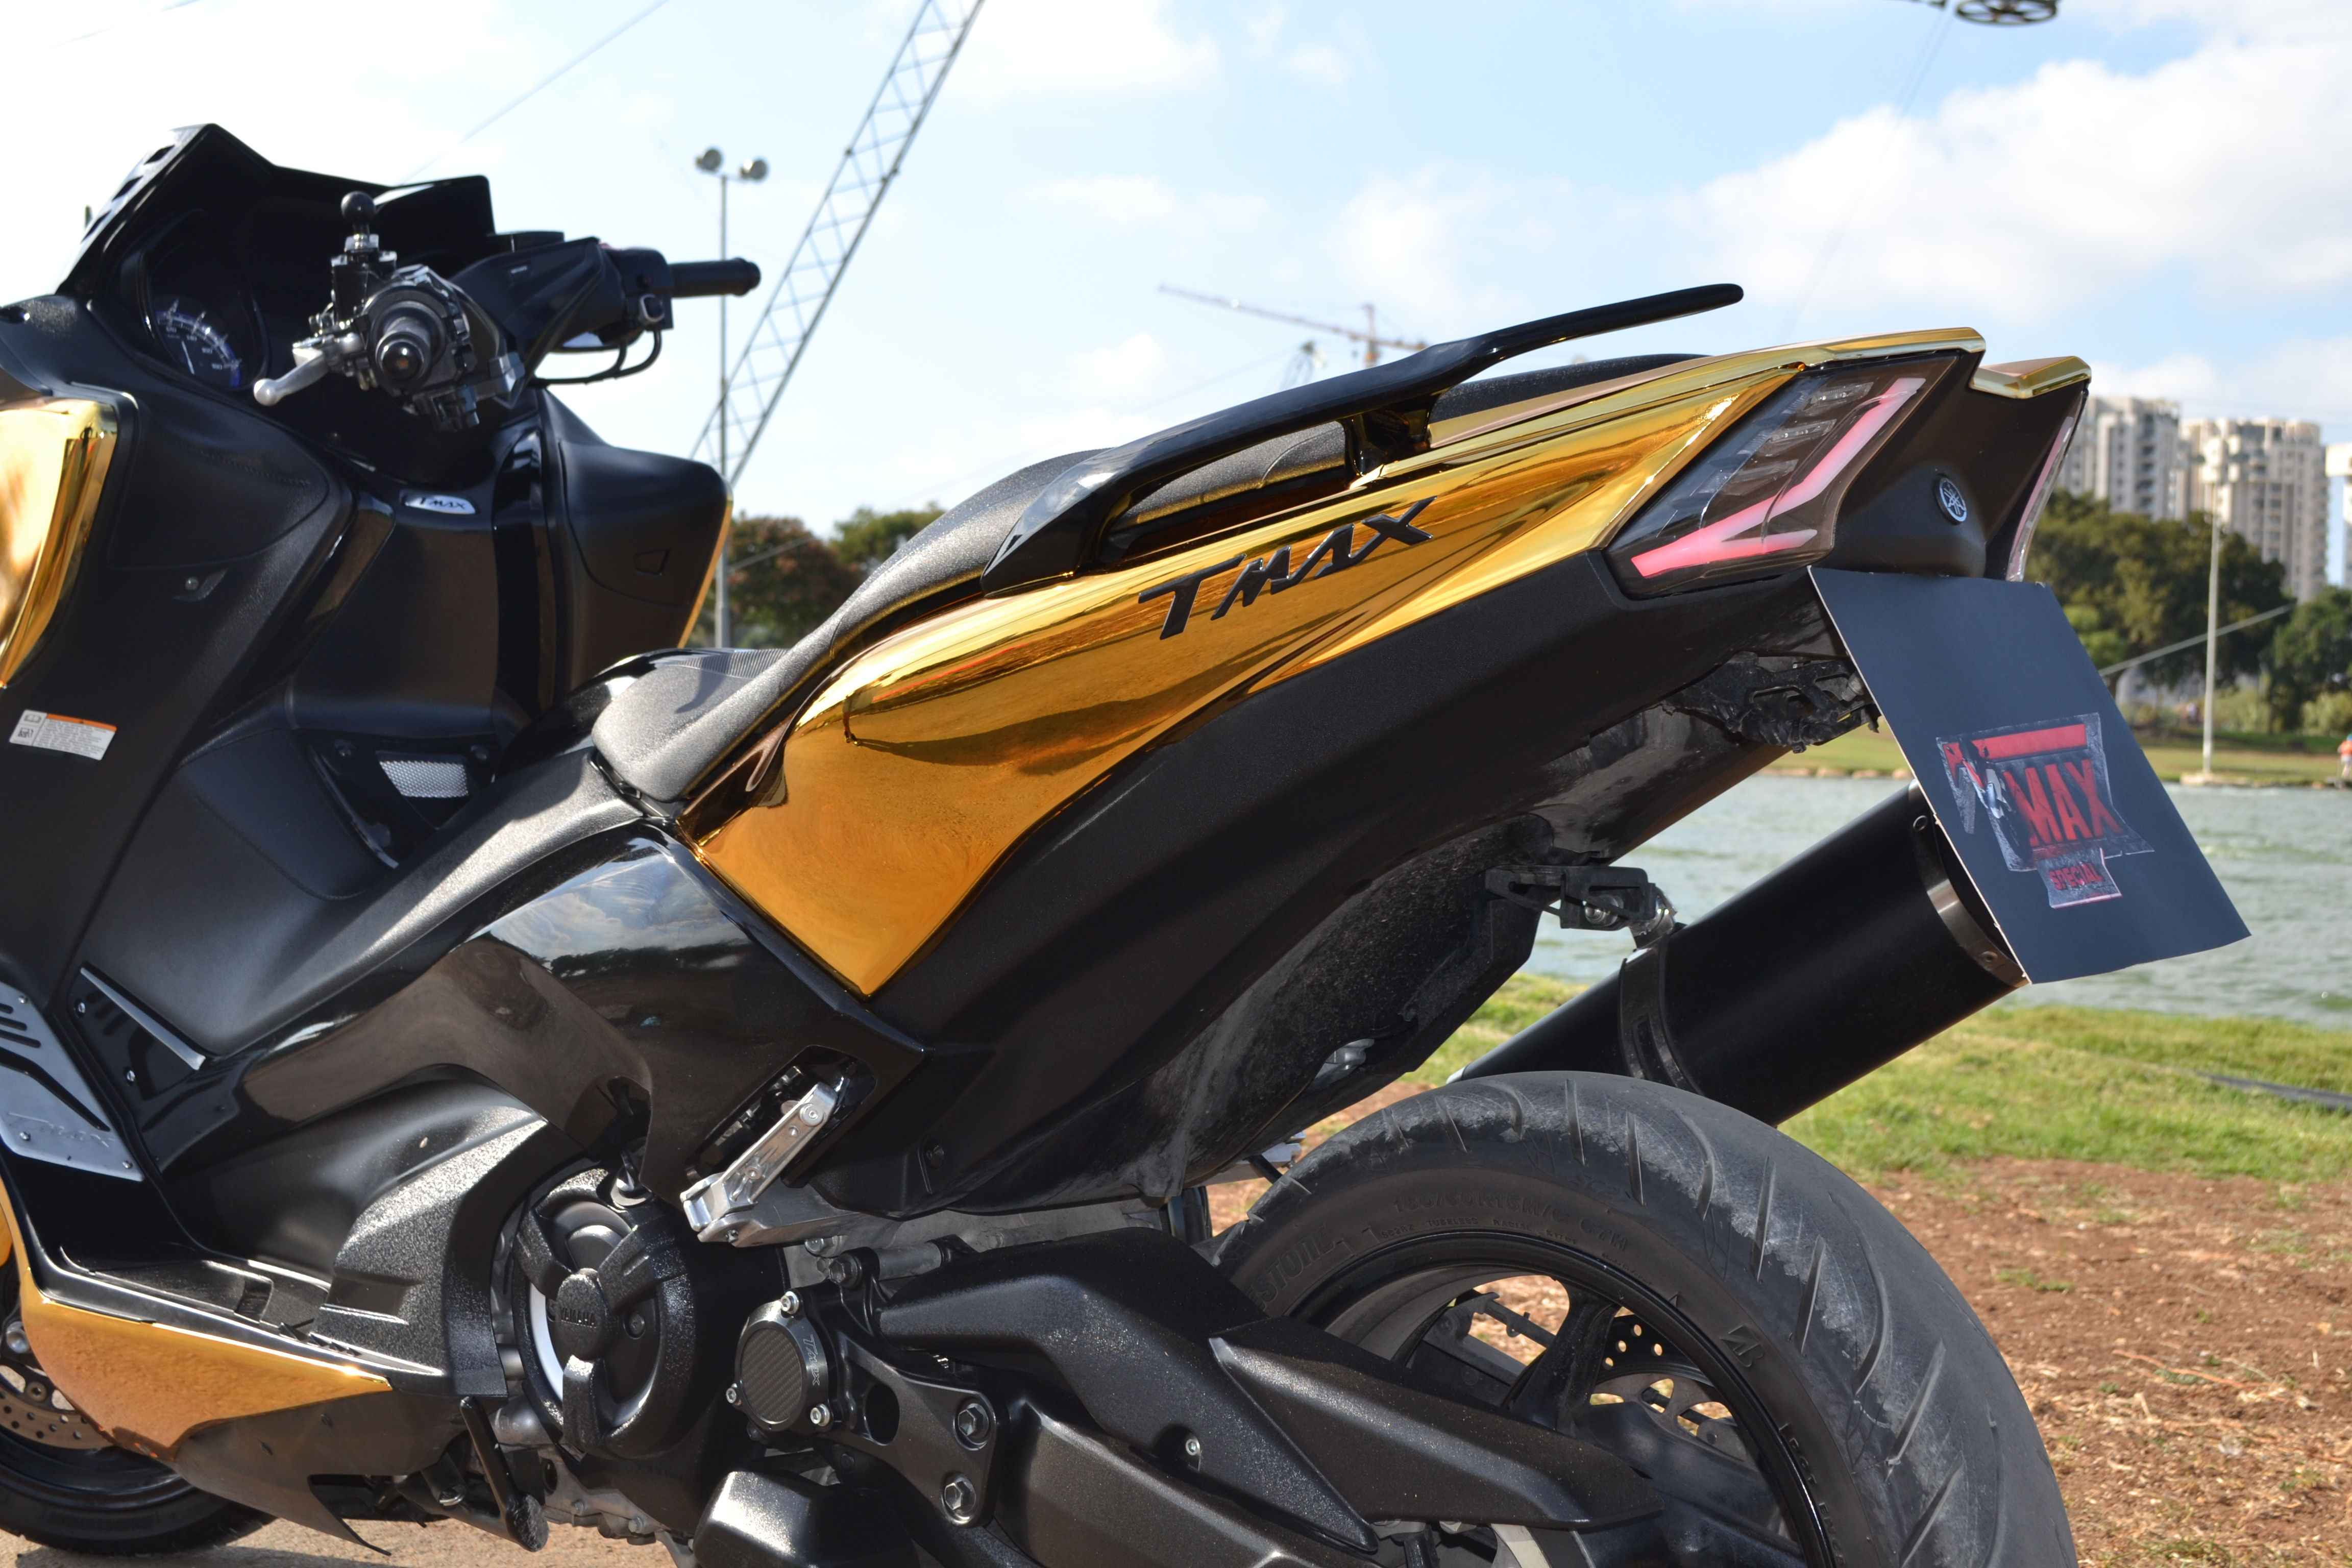 ABS プラスチッククロームオートバイフェアリングキット Yamaha TMAX 530 2017-2019 T-MAX 530 2017 2018 2019